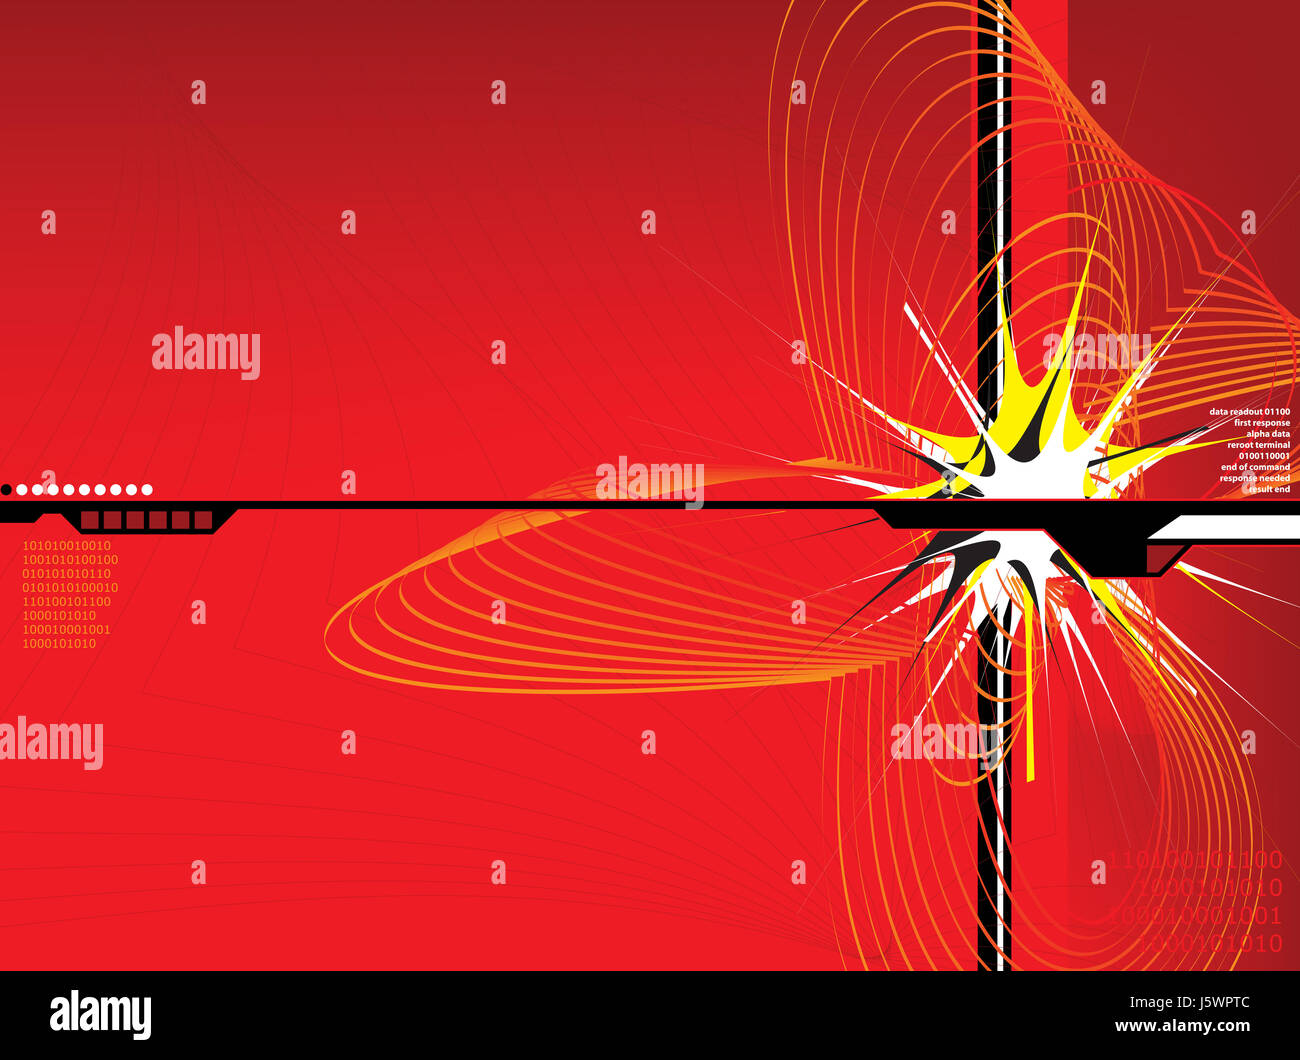 Abstract Desktop Spike Explode Rotate Swirl Backdrop